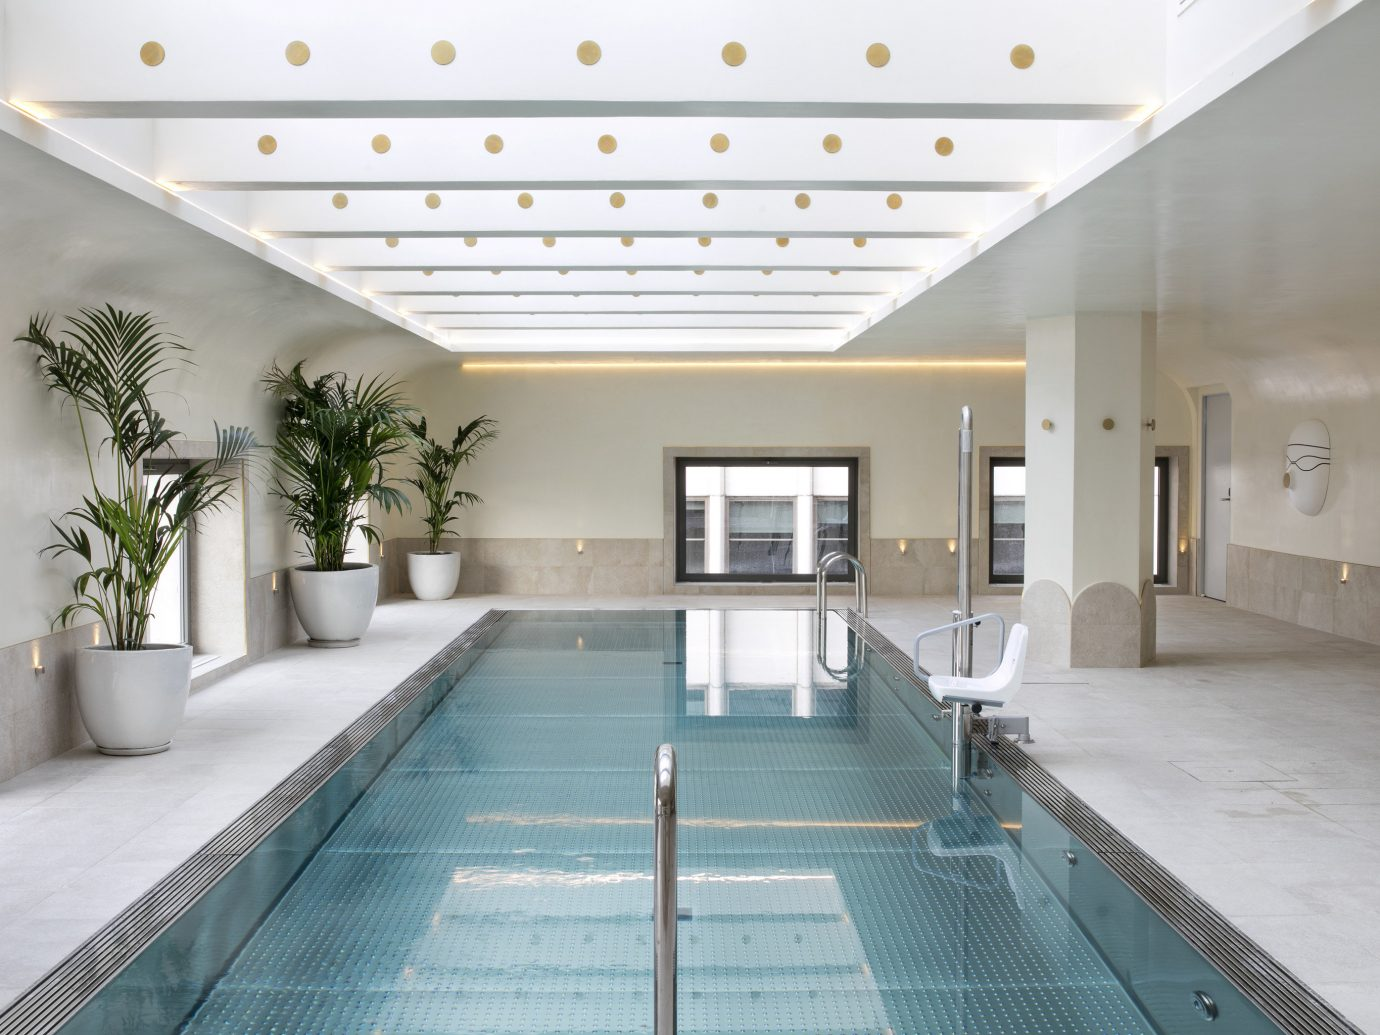 Hotels Madrid Spain indoor ceiling building interior design floor daylighting swimming pool Lobby estate condominium real estate leisure centre apartment amenity hall window furniture area